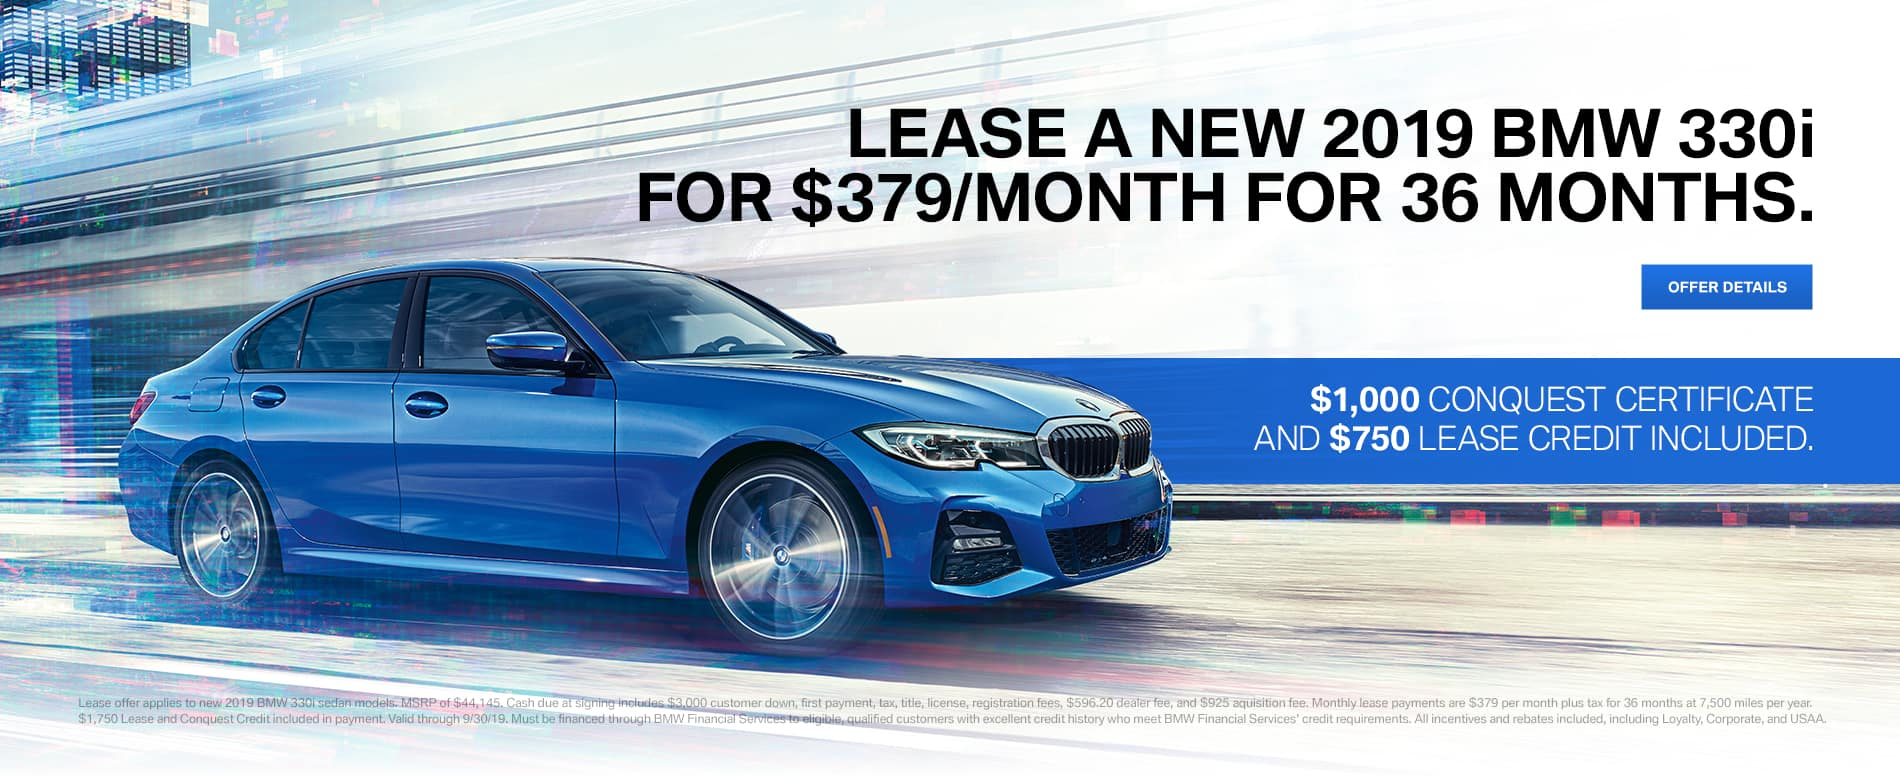 2019 BMW 330i Lease Offer | Reeves BMW Tampa